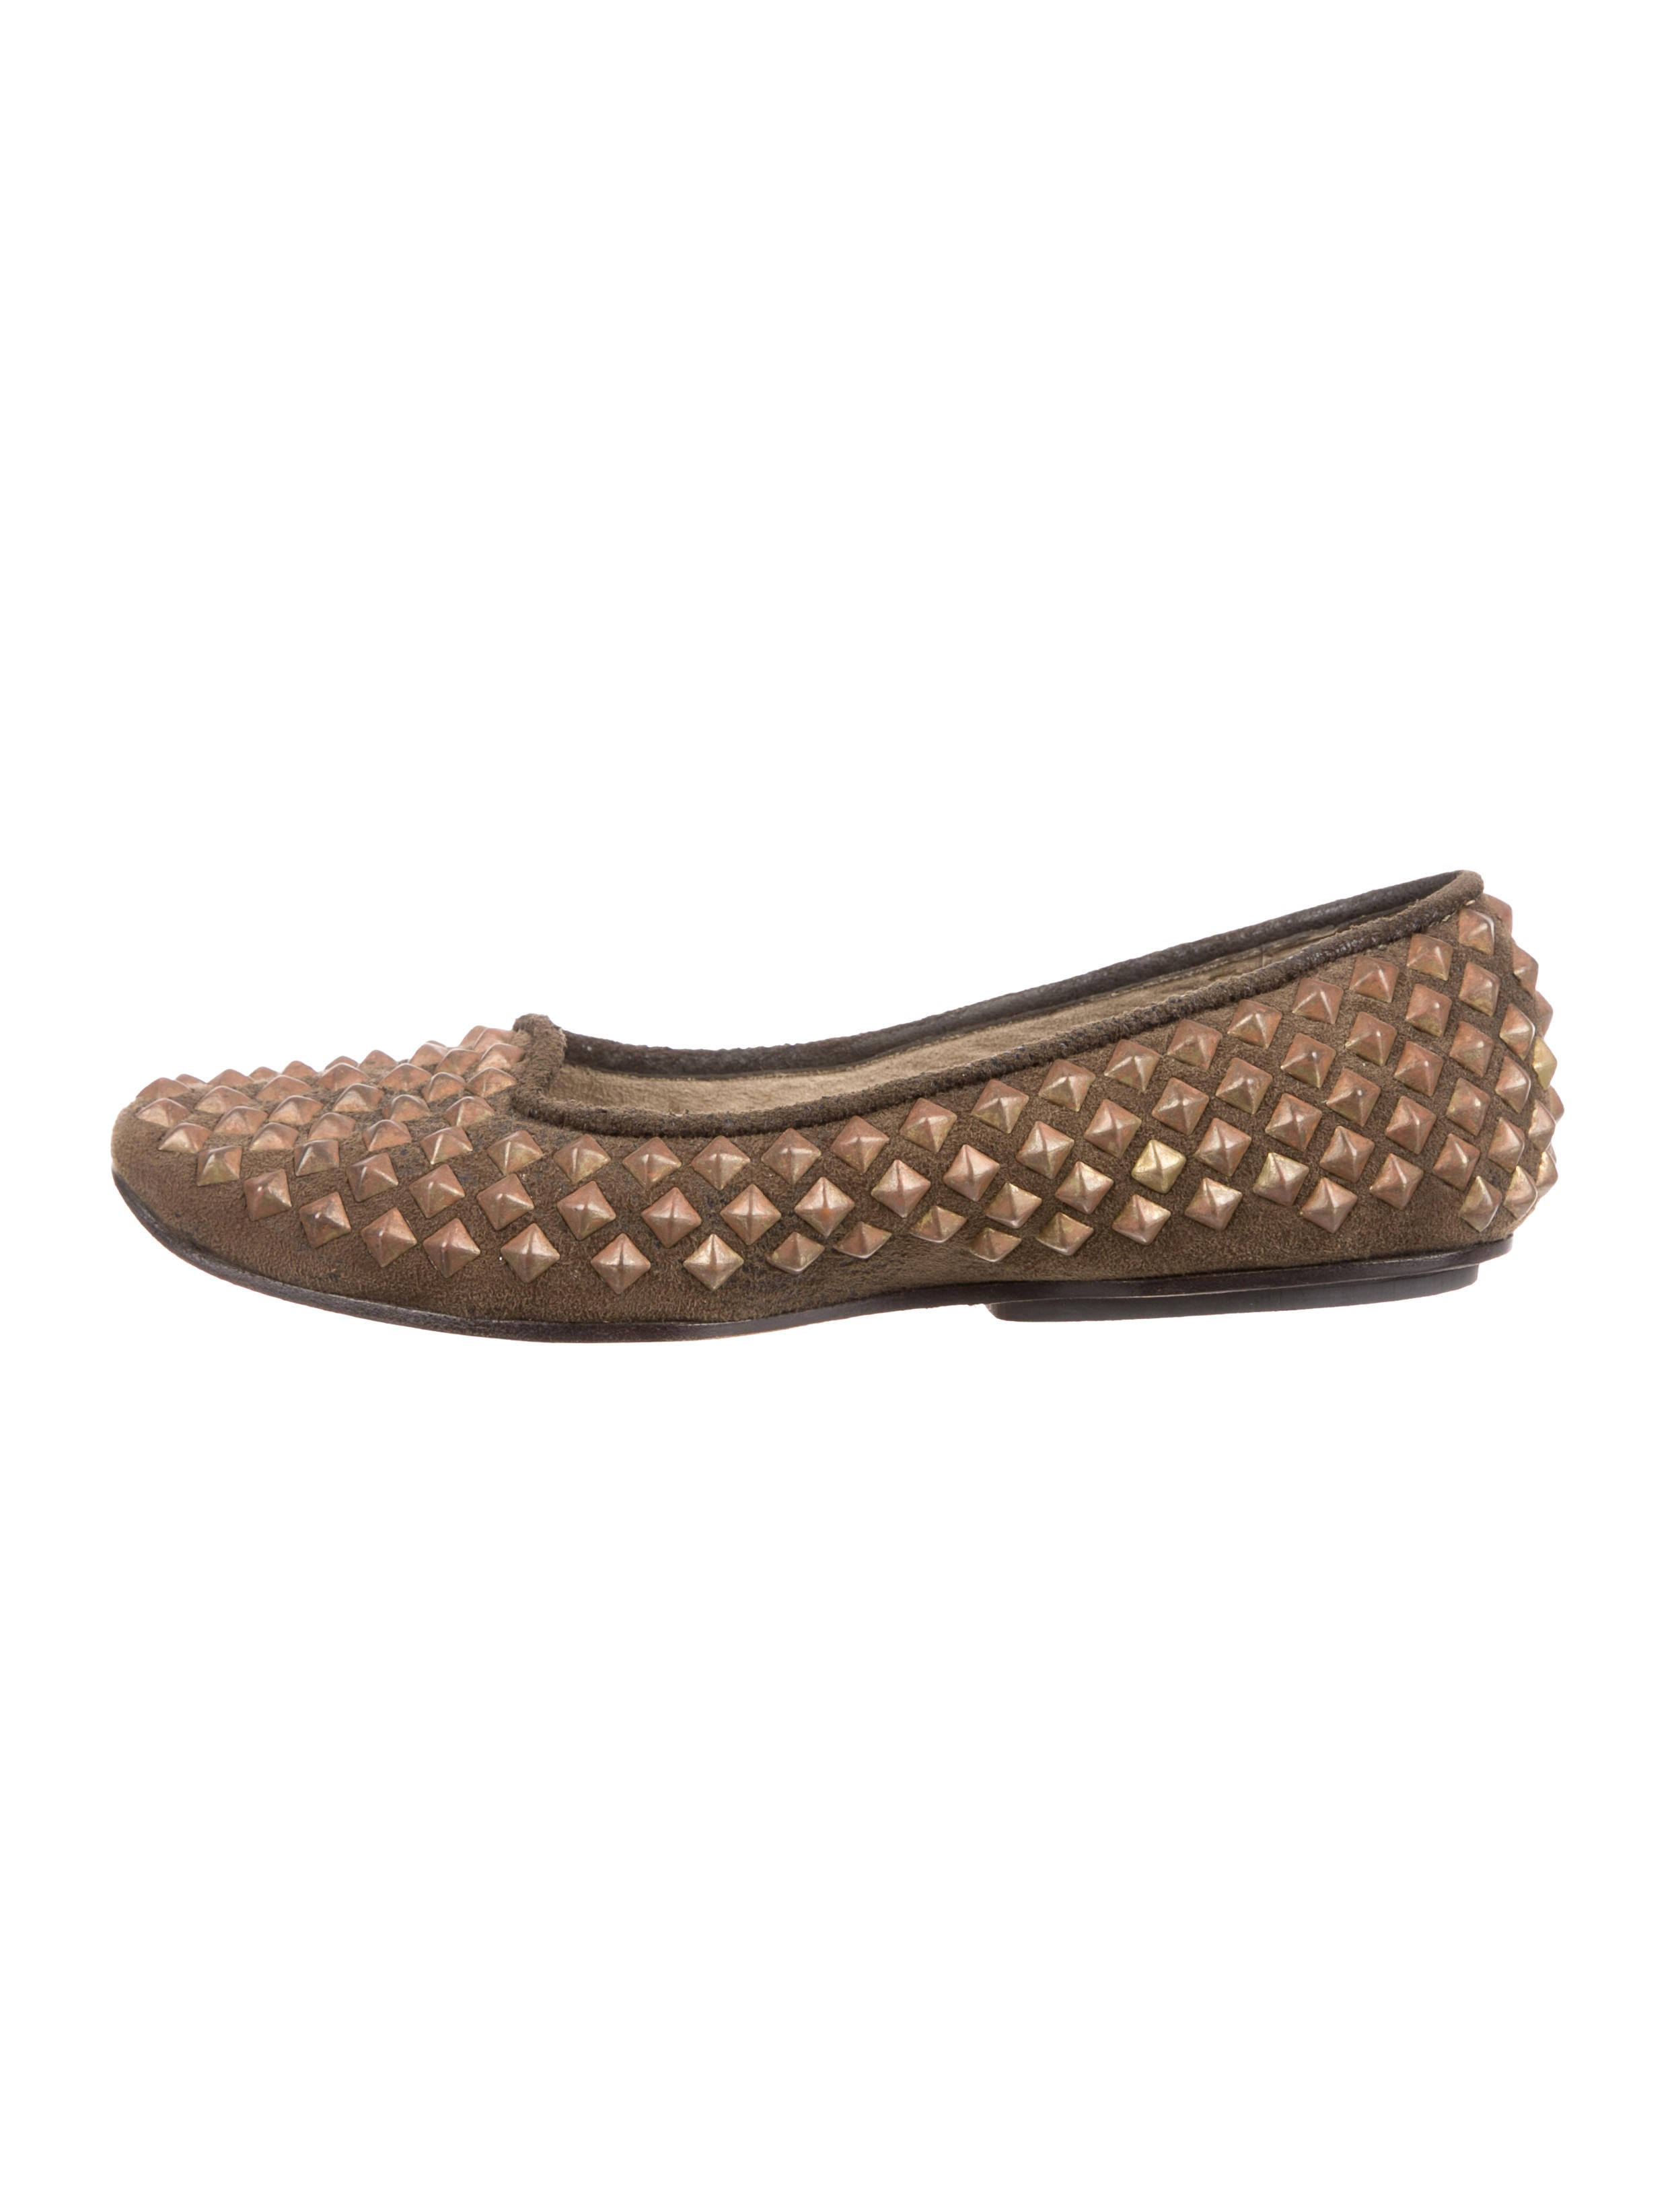 free shipping real clearance clearance Calleen Cordero Embellished Suede Flats w/ Tags jcwNWl